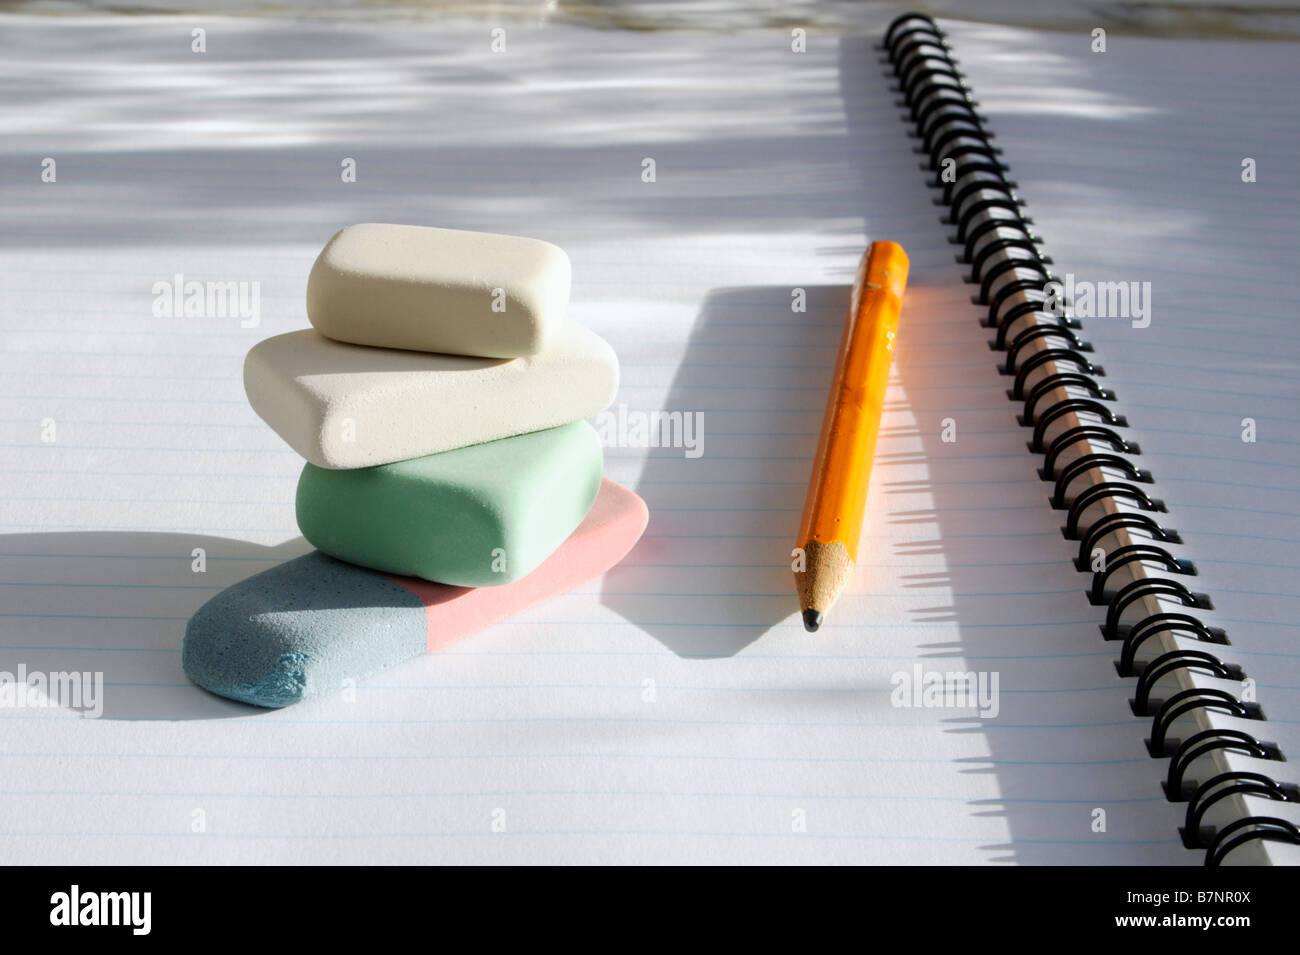 A pile of erasers and a pencil on the page of a spiral exercise book. - Stock Image